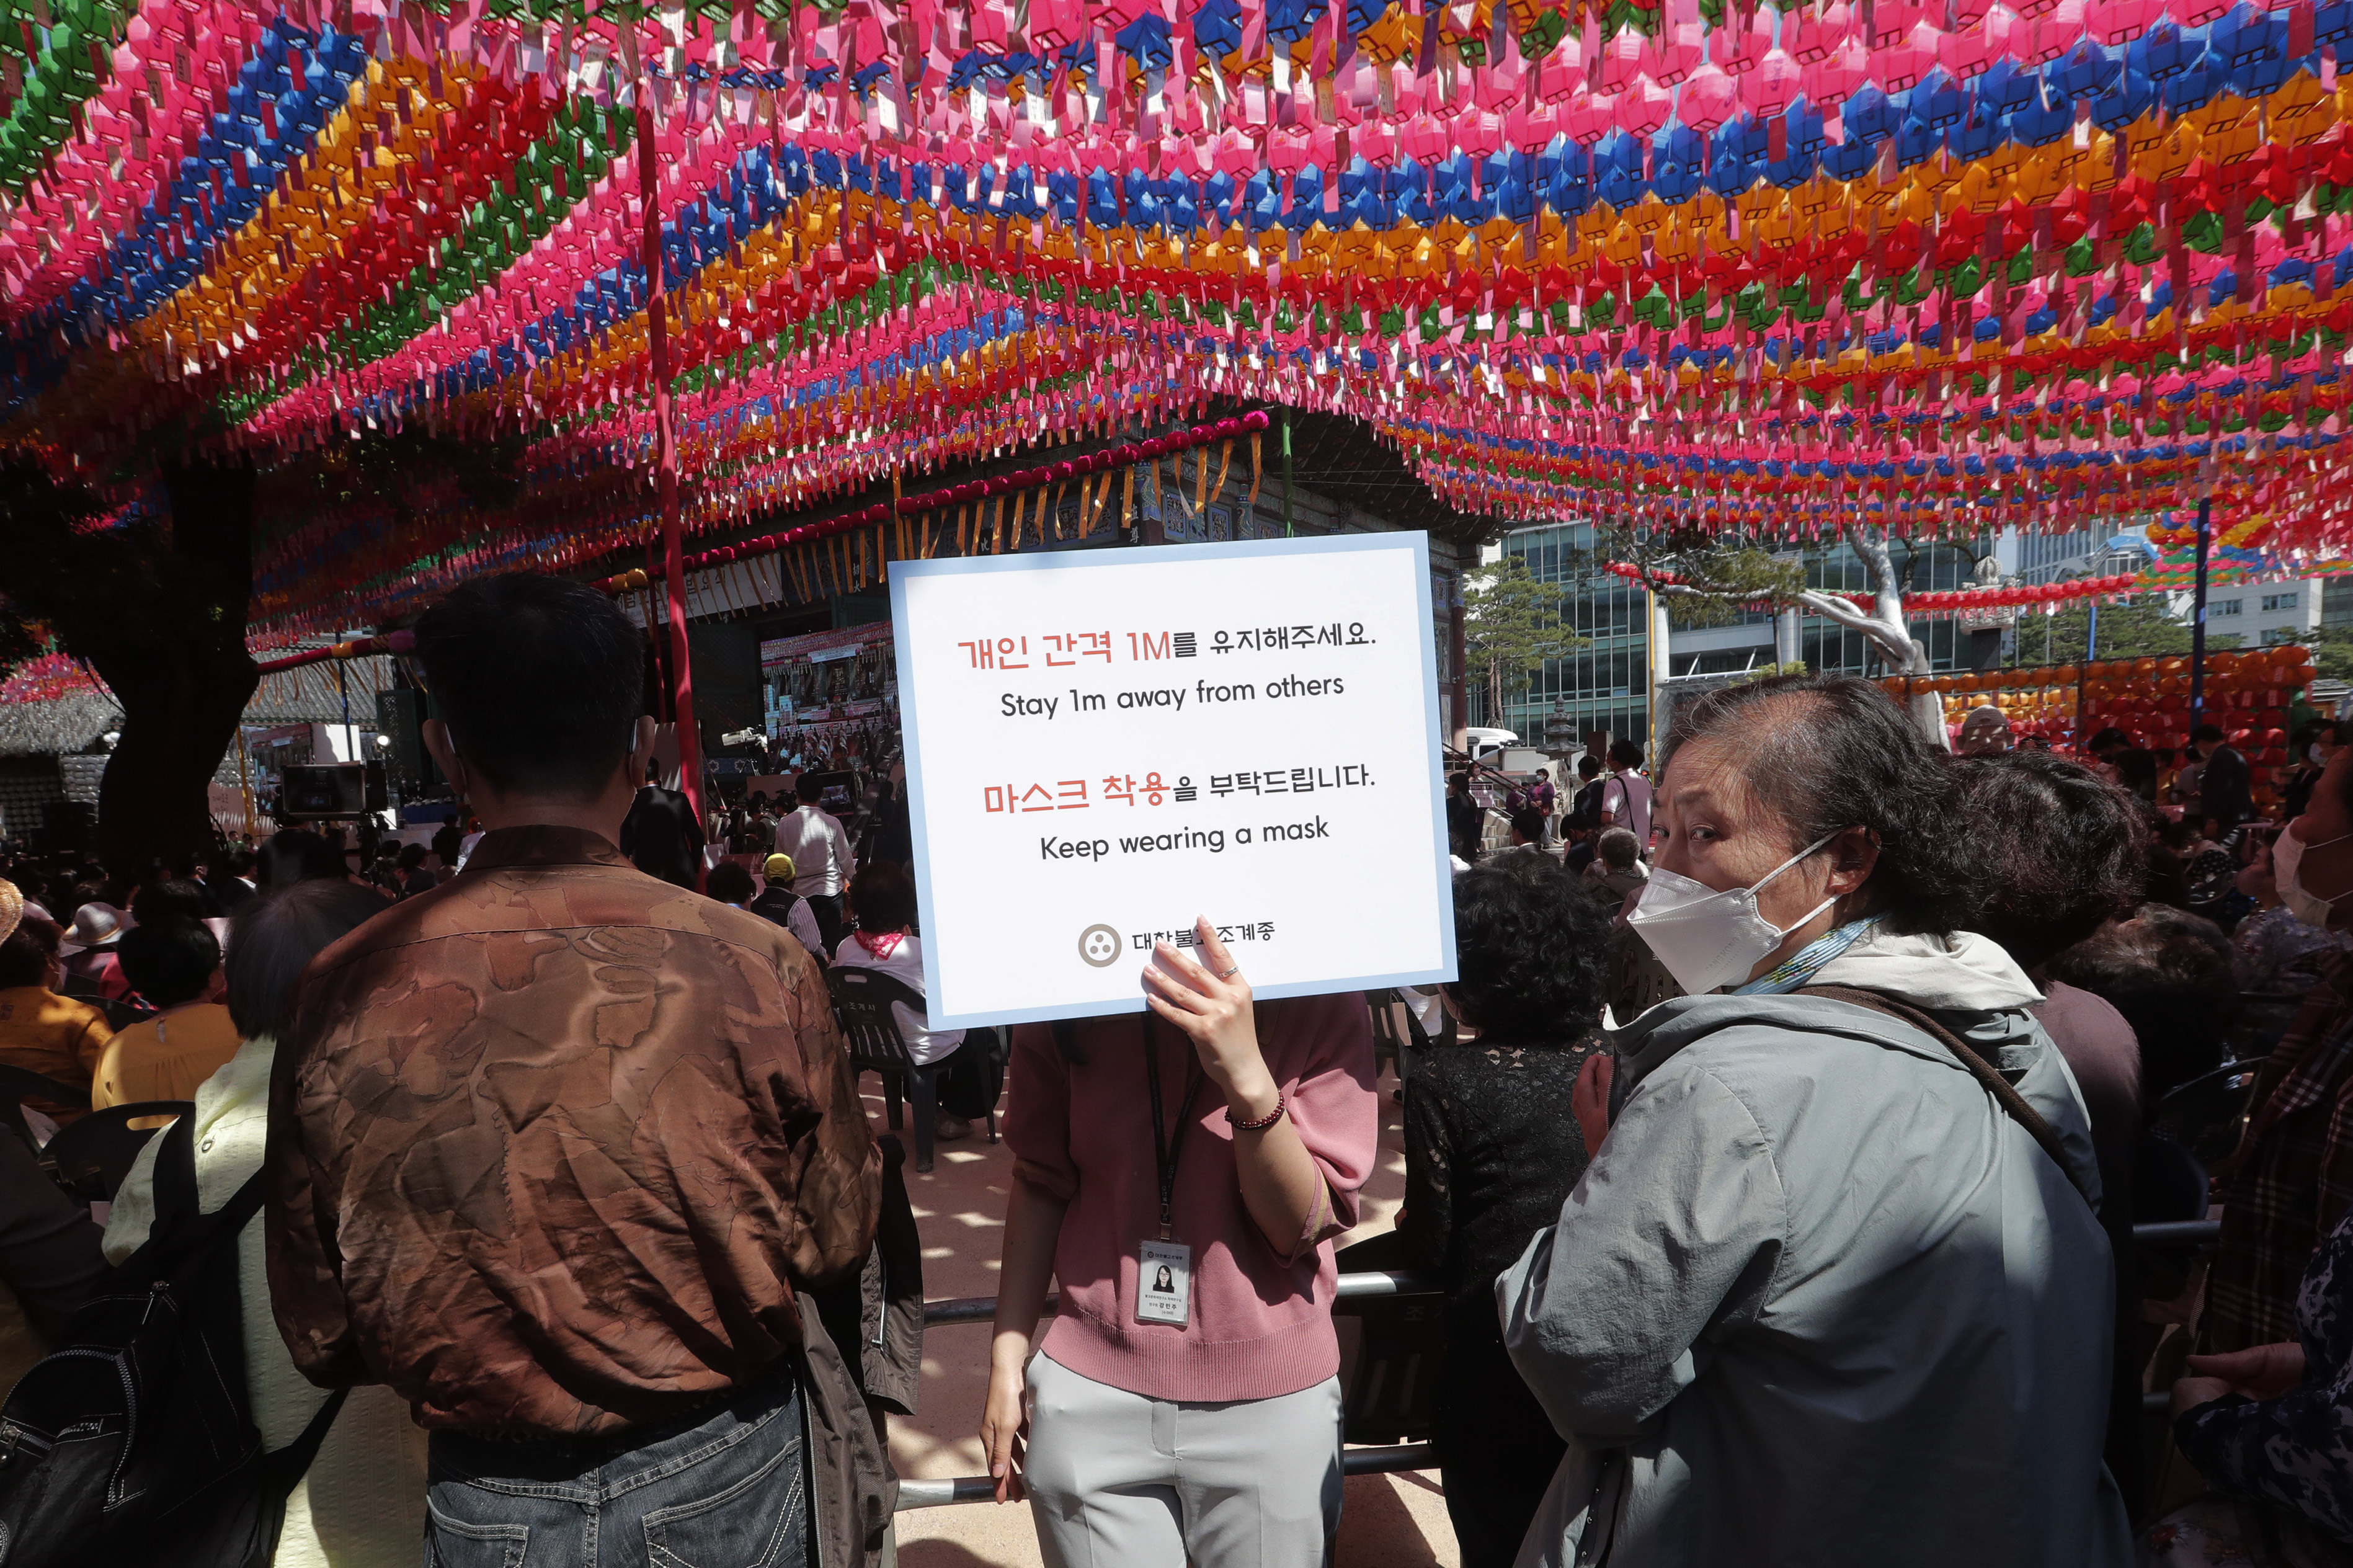 A Buddhist believer holds a notice about precautions against the new coronavirus during the Buddha's birthday ceremony at the Jogye temple in Seoul, South Korea, Saturday, May 30, 2020. This year a ceremony to celebrate the birth anniversary was put off from April 30 to May 30 due to the coronavirus. (AP Photo/Ahn Young-joon)